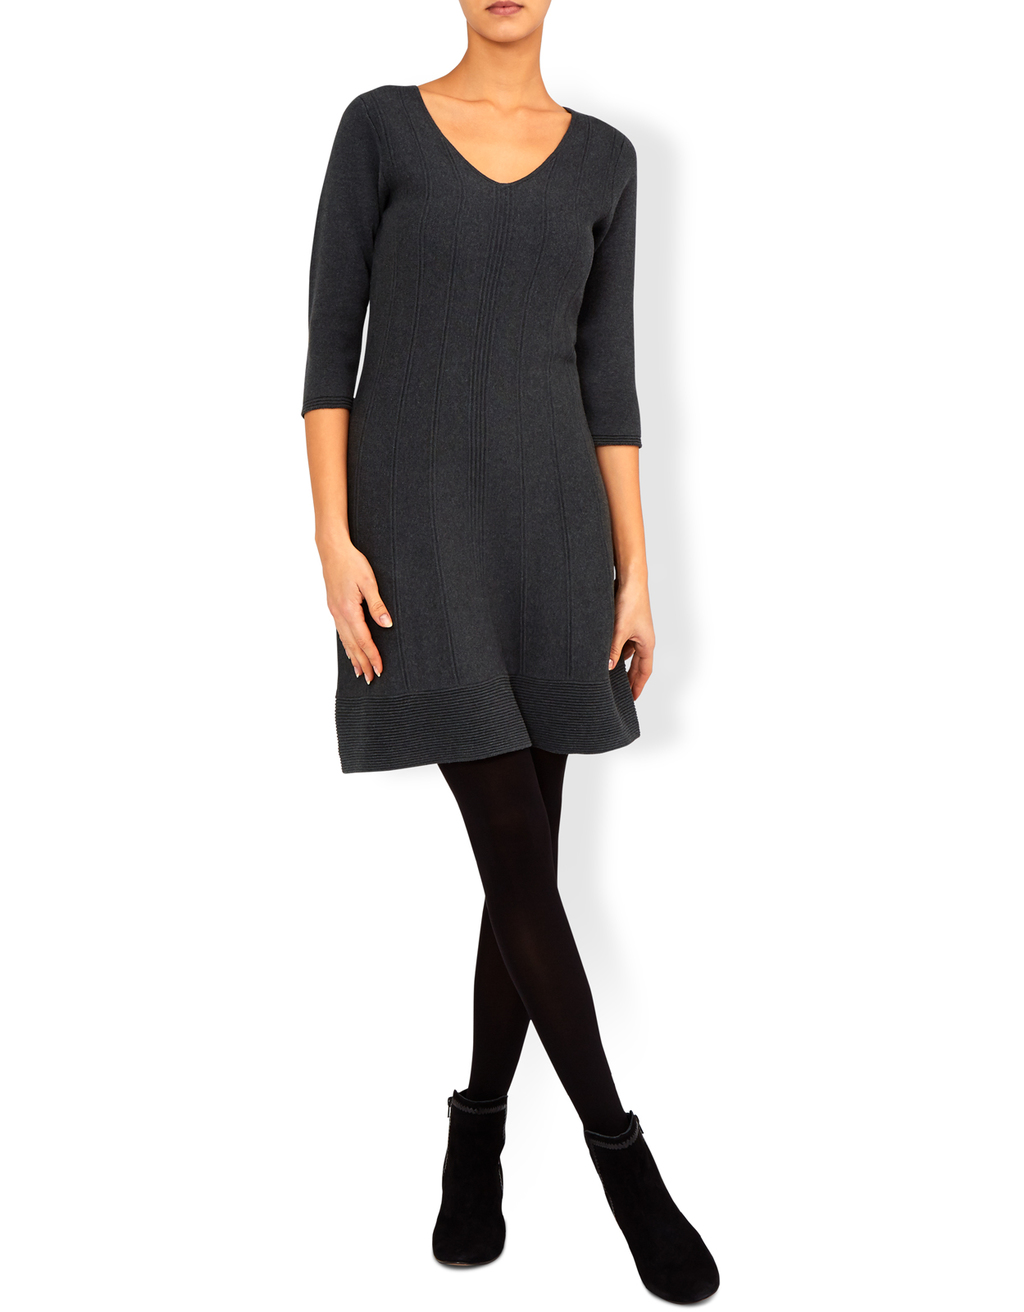 Faye Fit And Flare Knitted Dress - neckline: v-neck; pattern: plain; predominant colour: charcoal; occasions: casual, work, creative work; length: just above the knee; fit: fitted at waist & bust; style: fit & flare; fibres: cotton - 100%; sleeve length: 3/4 length; sleeve style: standard; texture group: knits/crochet; pattern type: knitted - fine stitch; wardrobe: basic; season: a/w 2016